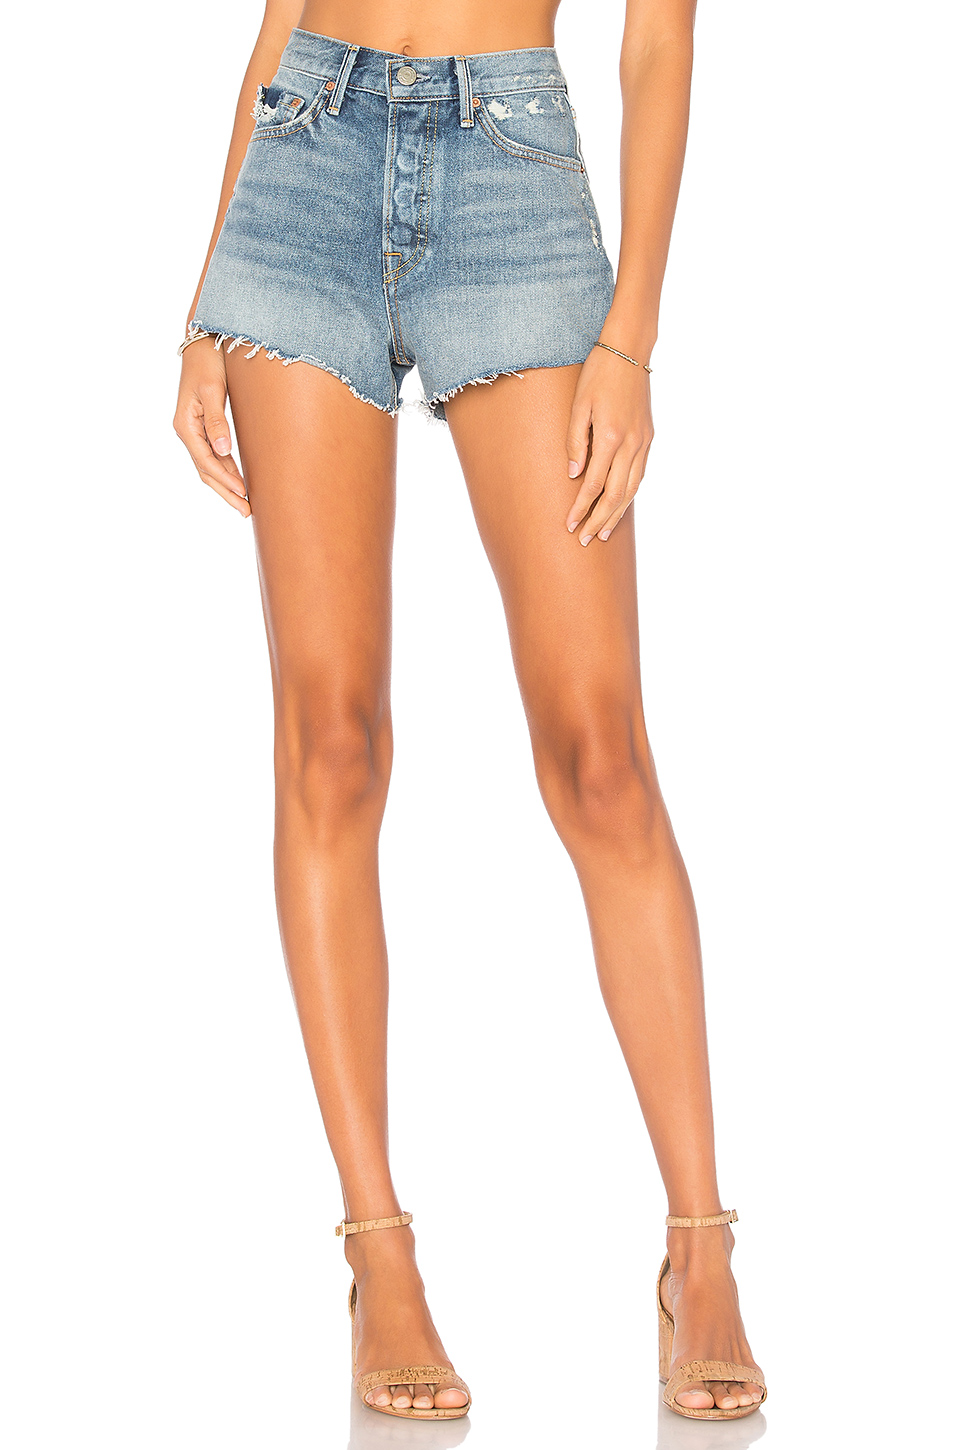 GRLFRND Helena High-Rise Short in McCartney